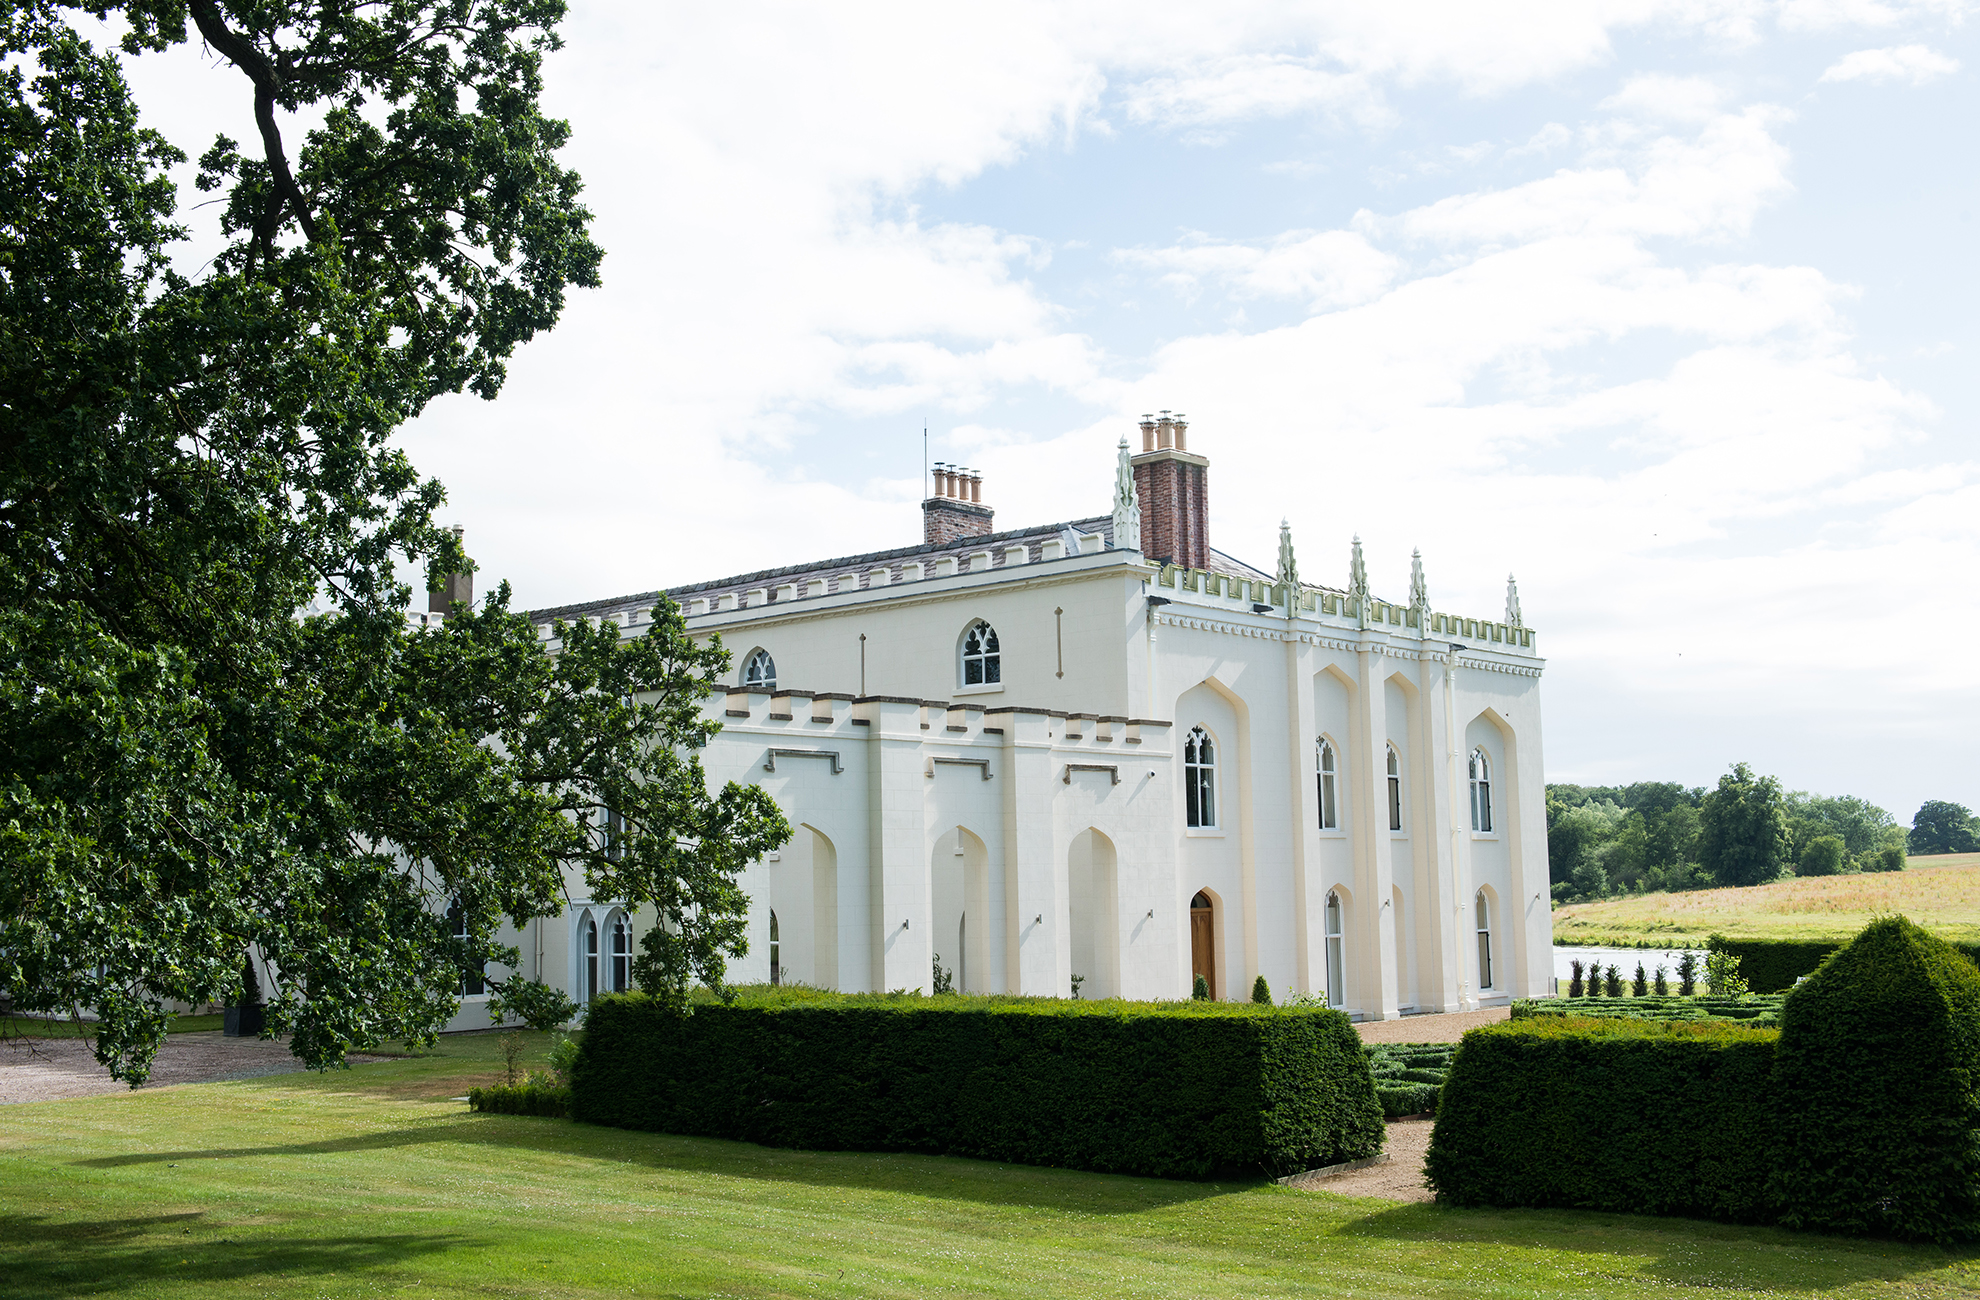 The North Wing at Combermere Abbey holds many love stories within its walls